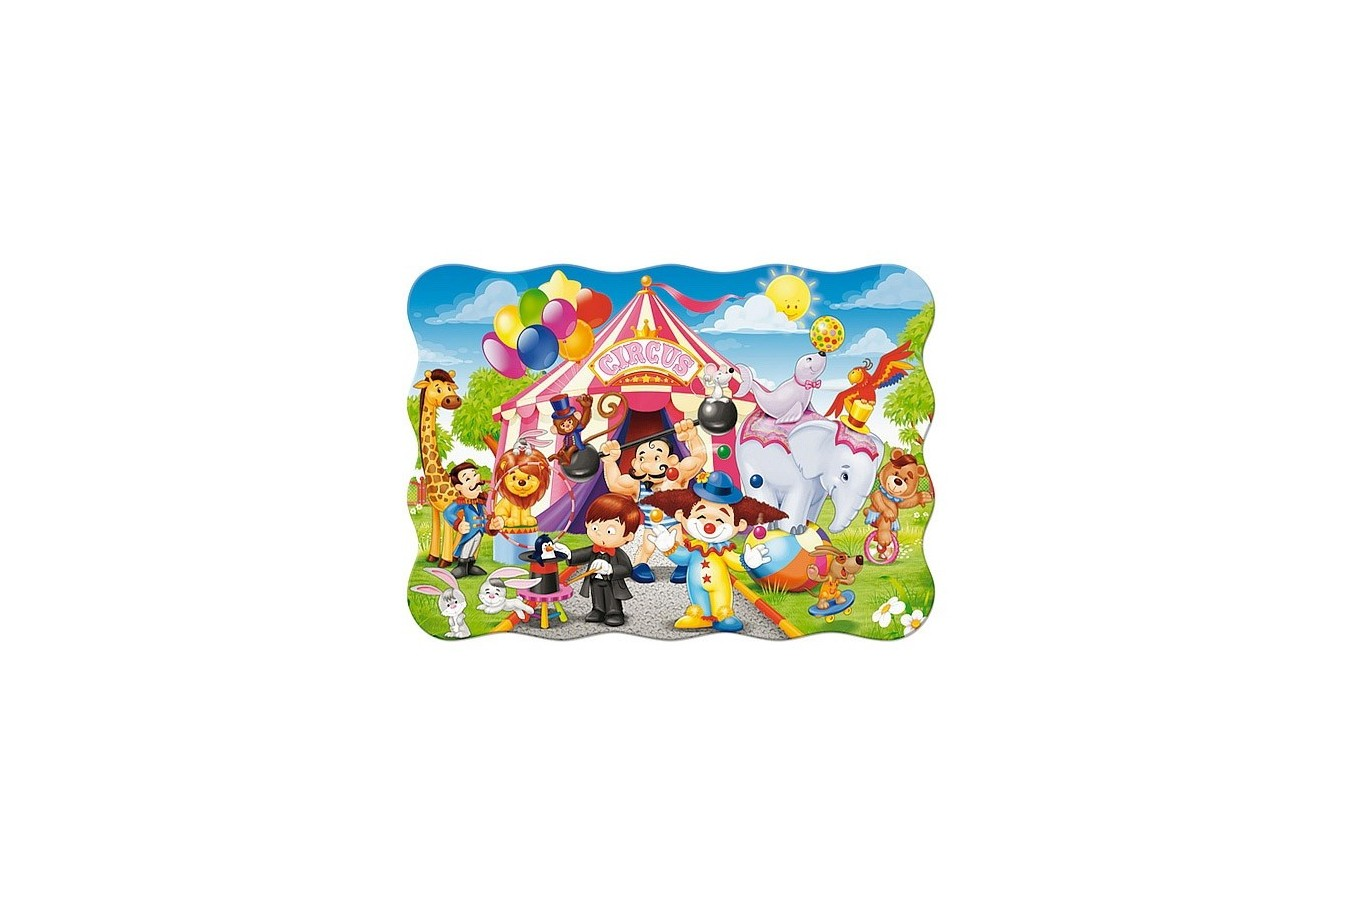 Puzzle Castorland - The Circus, 30 Piese